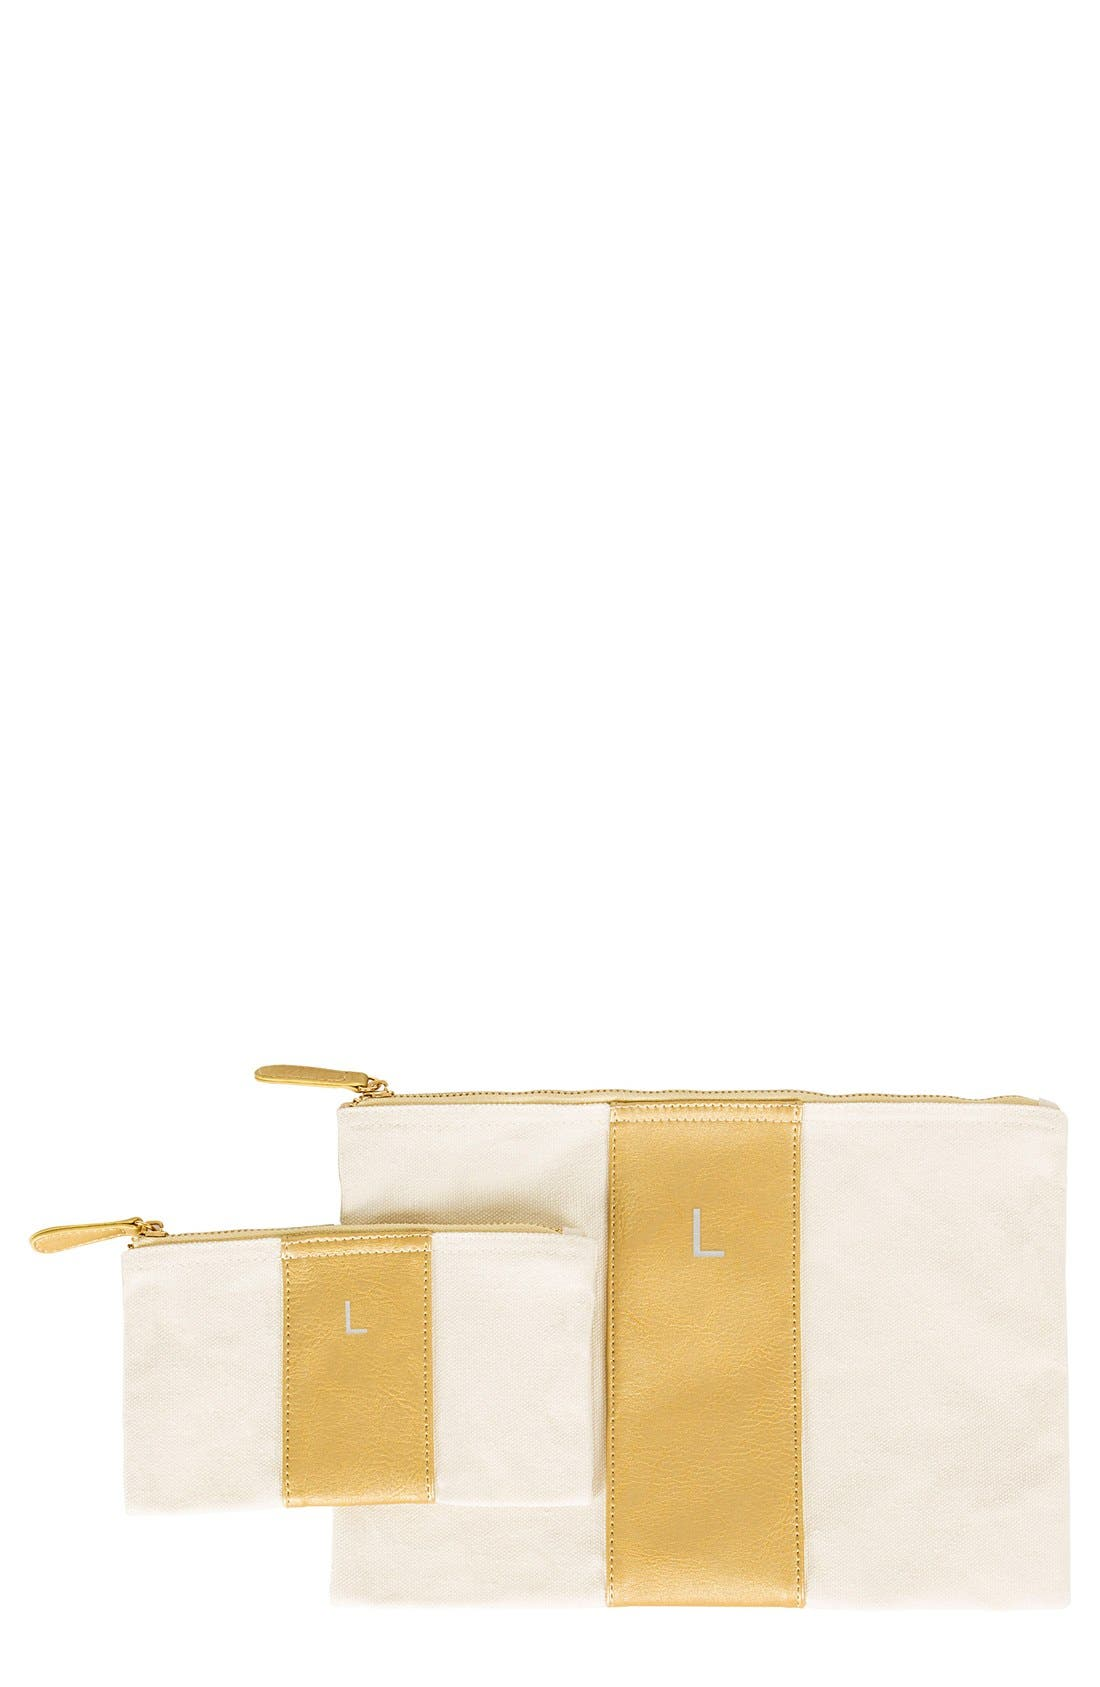 Personalized Faux Leather Clutch,                             Main thumbnail 30, color,